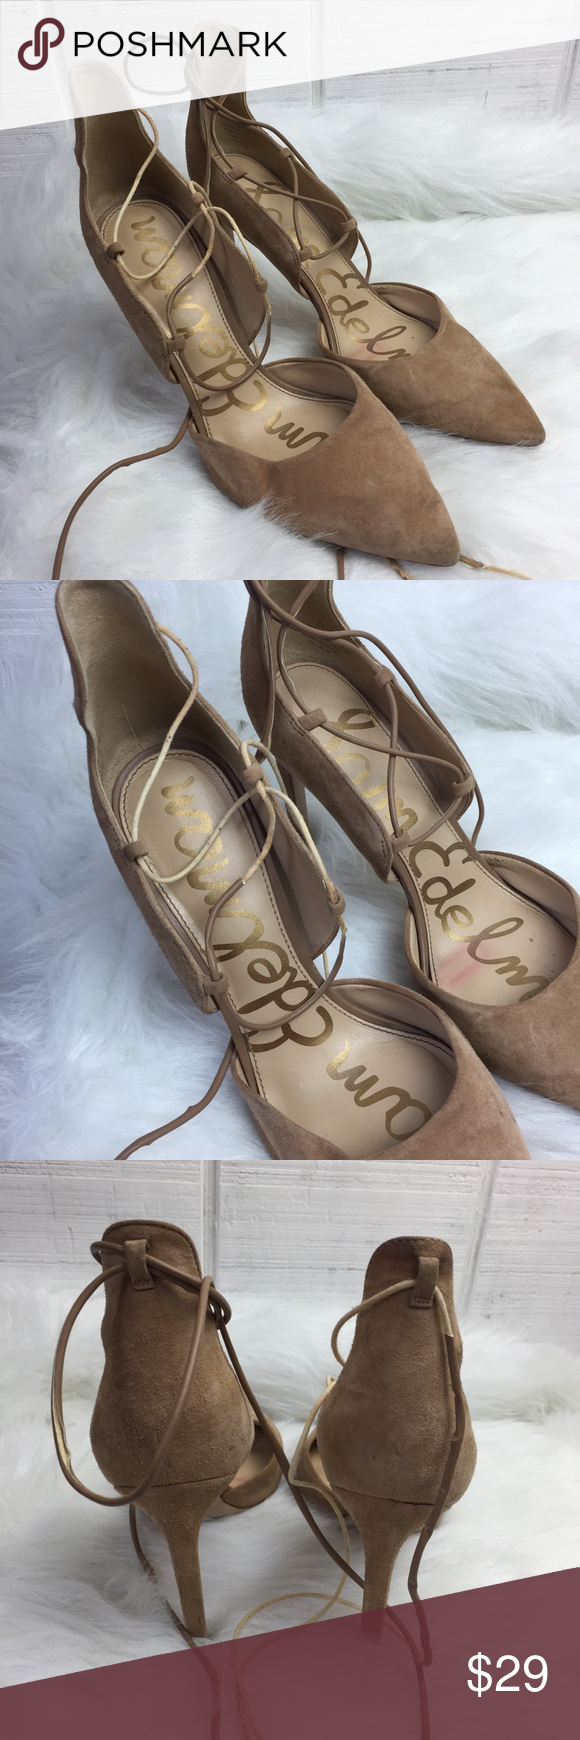 c10053d94 Women s Sam Edelman Helaine 9M Pump Heels Lace Up Women s Sam Edelman  Helaine 9M Pump Heels Lace Up Gray Suede Pointed Toe As Is Please note that  these ...